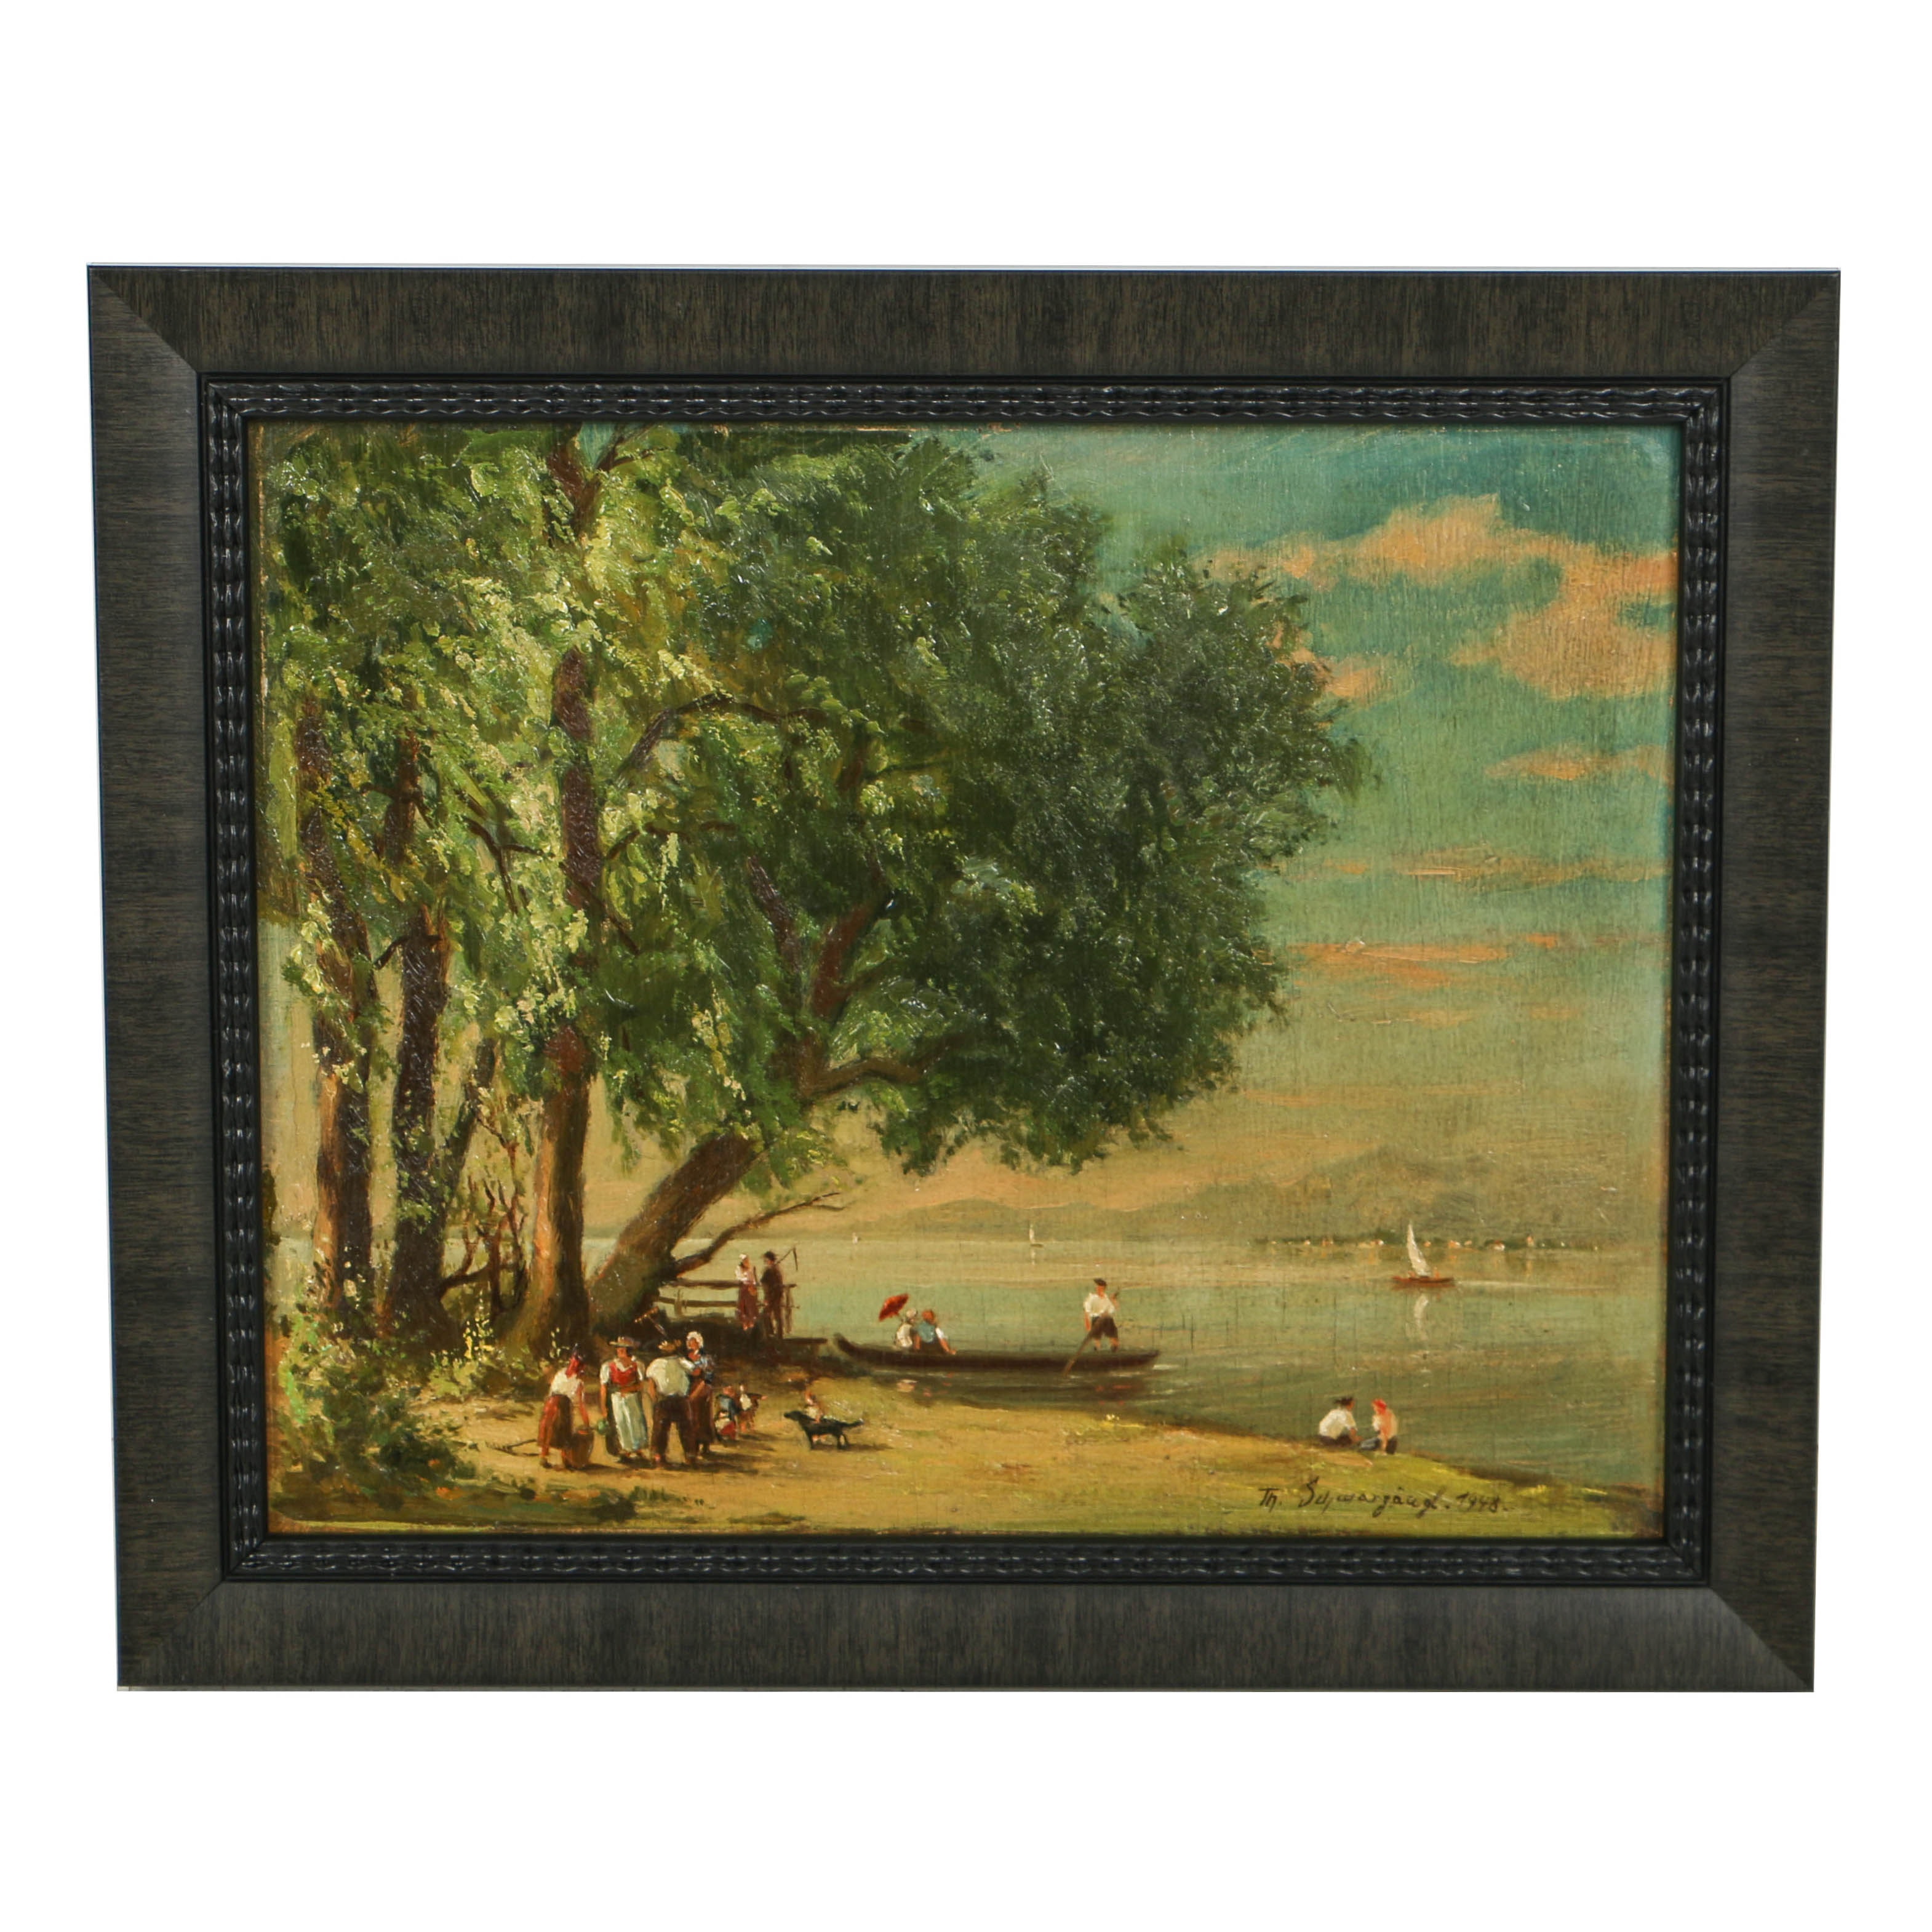 Oil Painting on Board of a River Bank Scene